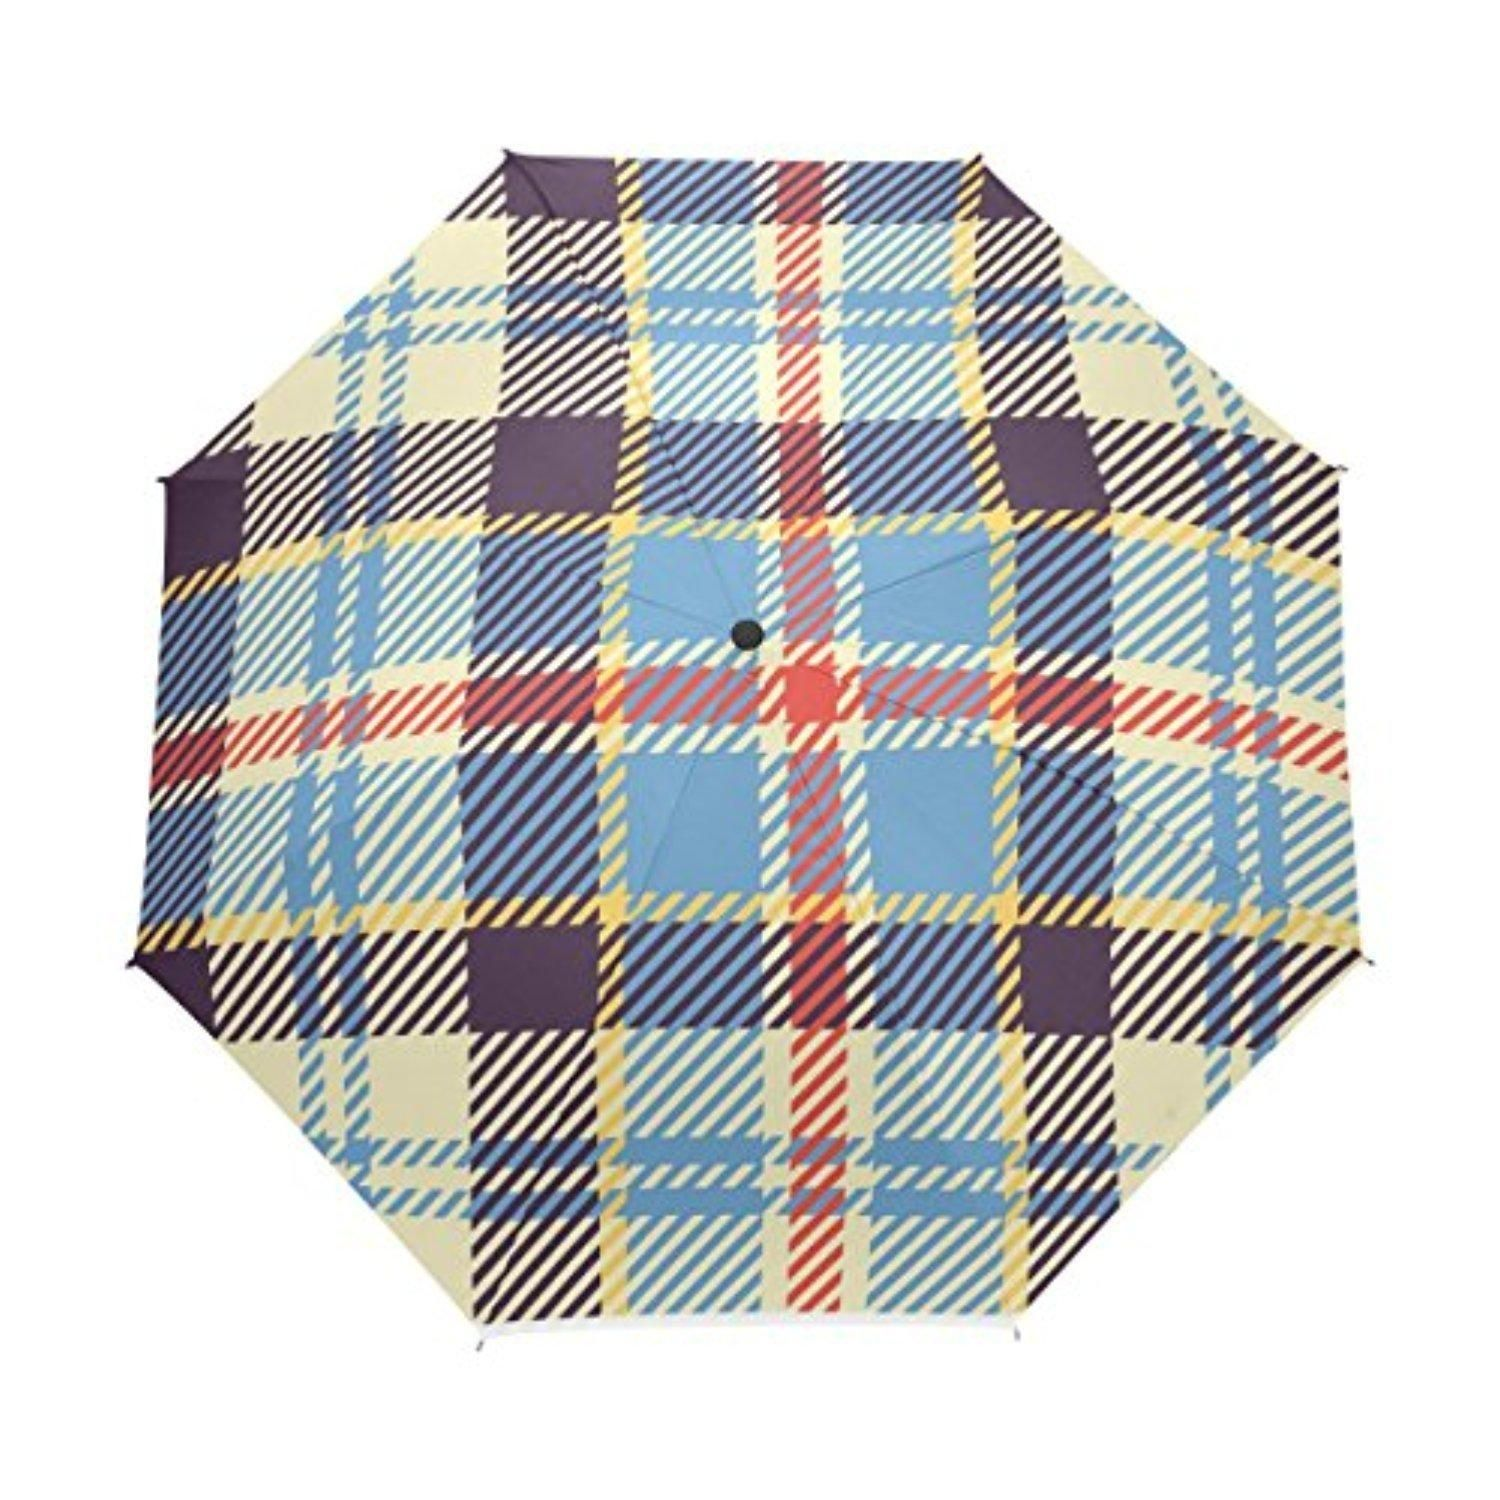 VAWAS Ferguson Clan Tartan Pattern 100% Fabric and Aluminium Foldable Umbrella (41 Inch) - Brought to you by Avarsha.com